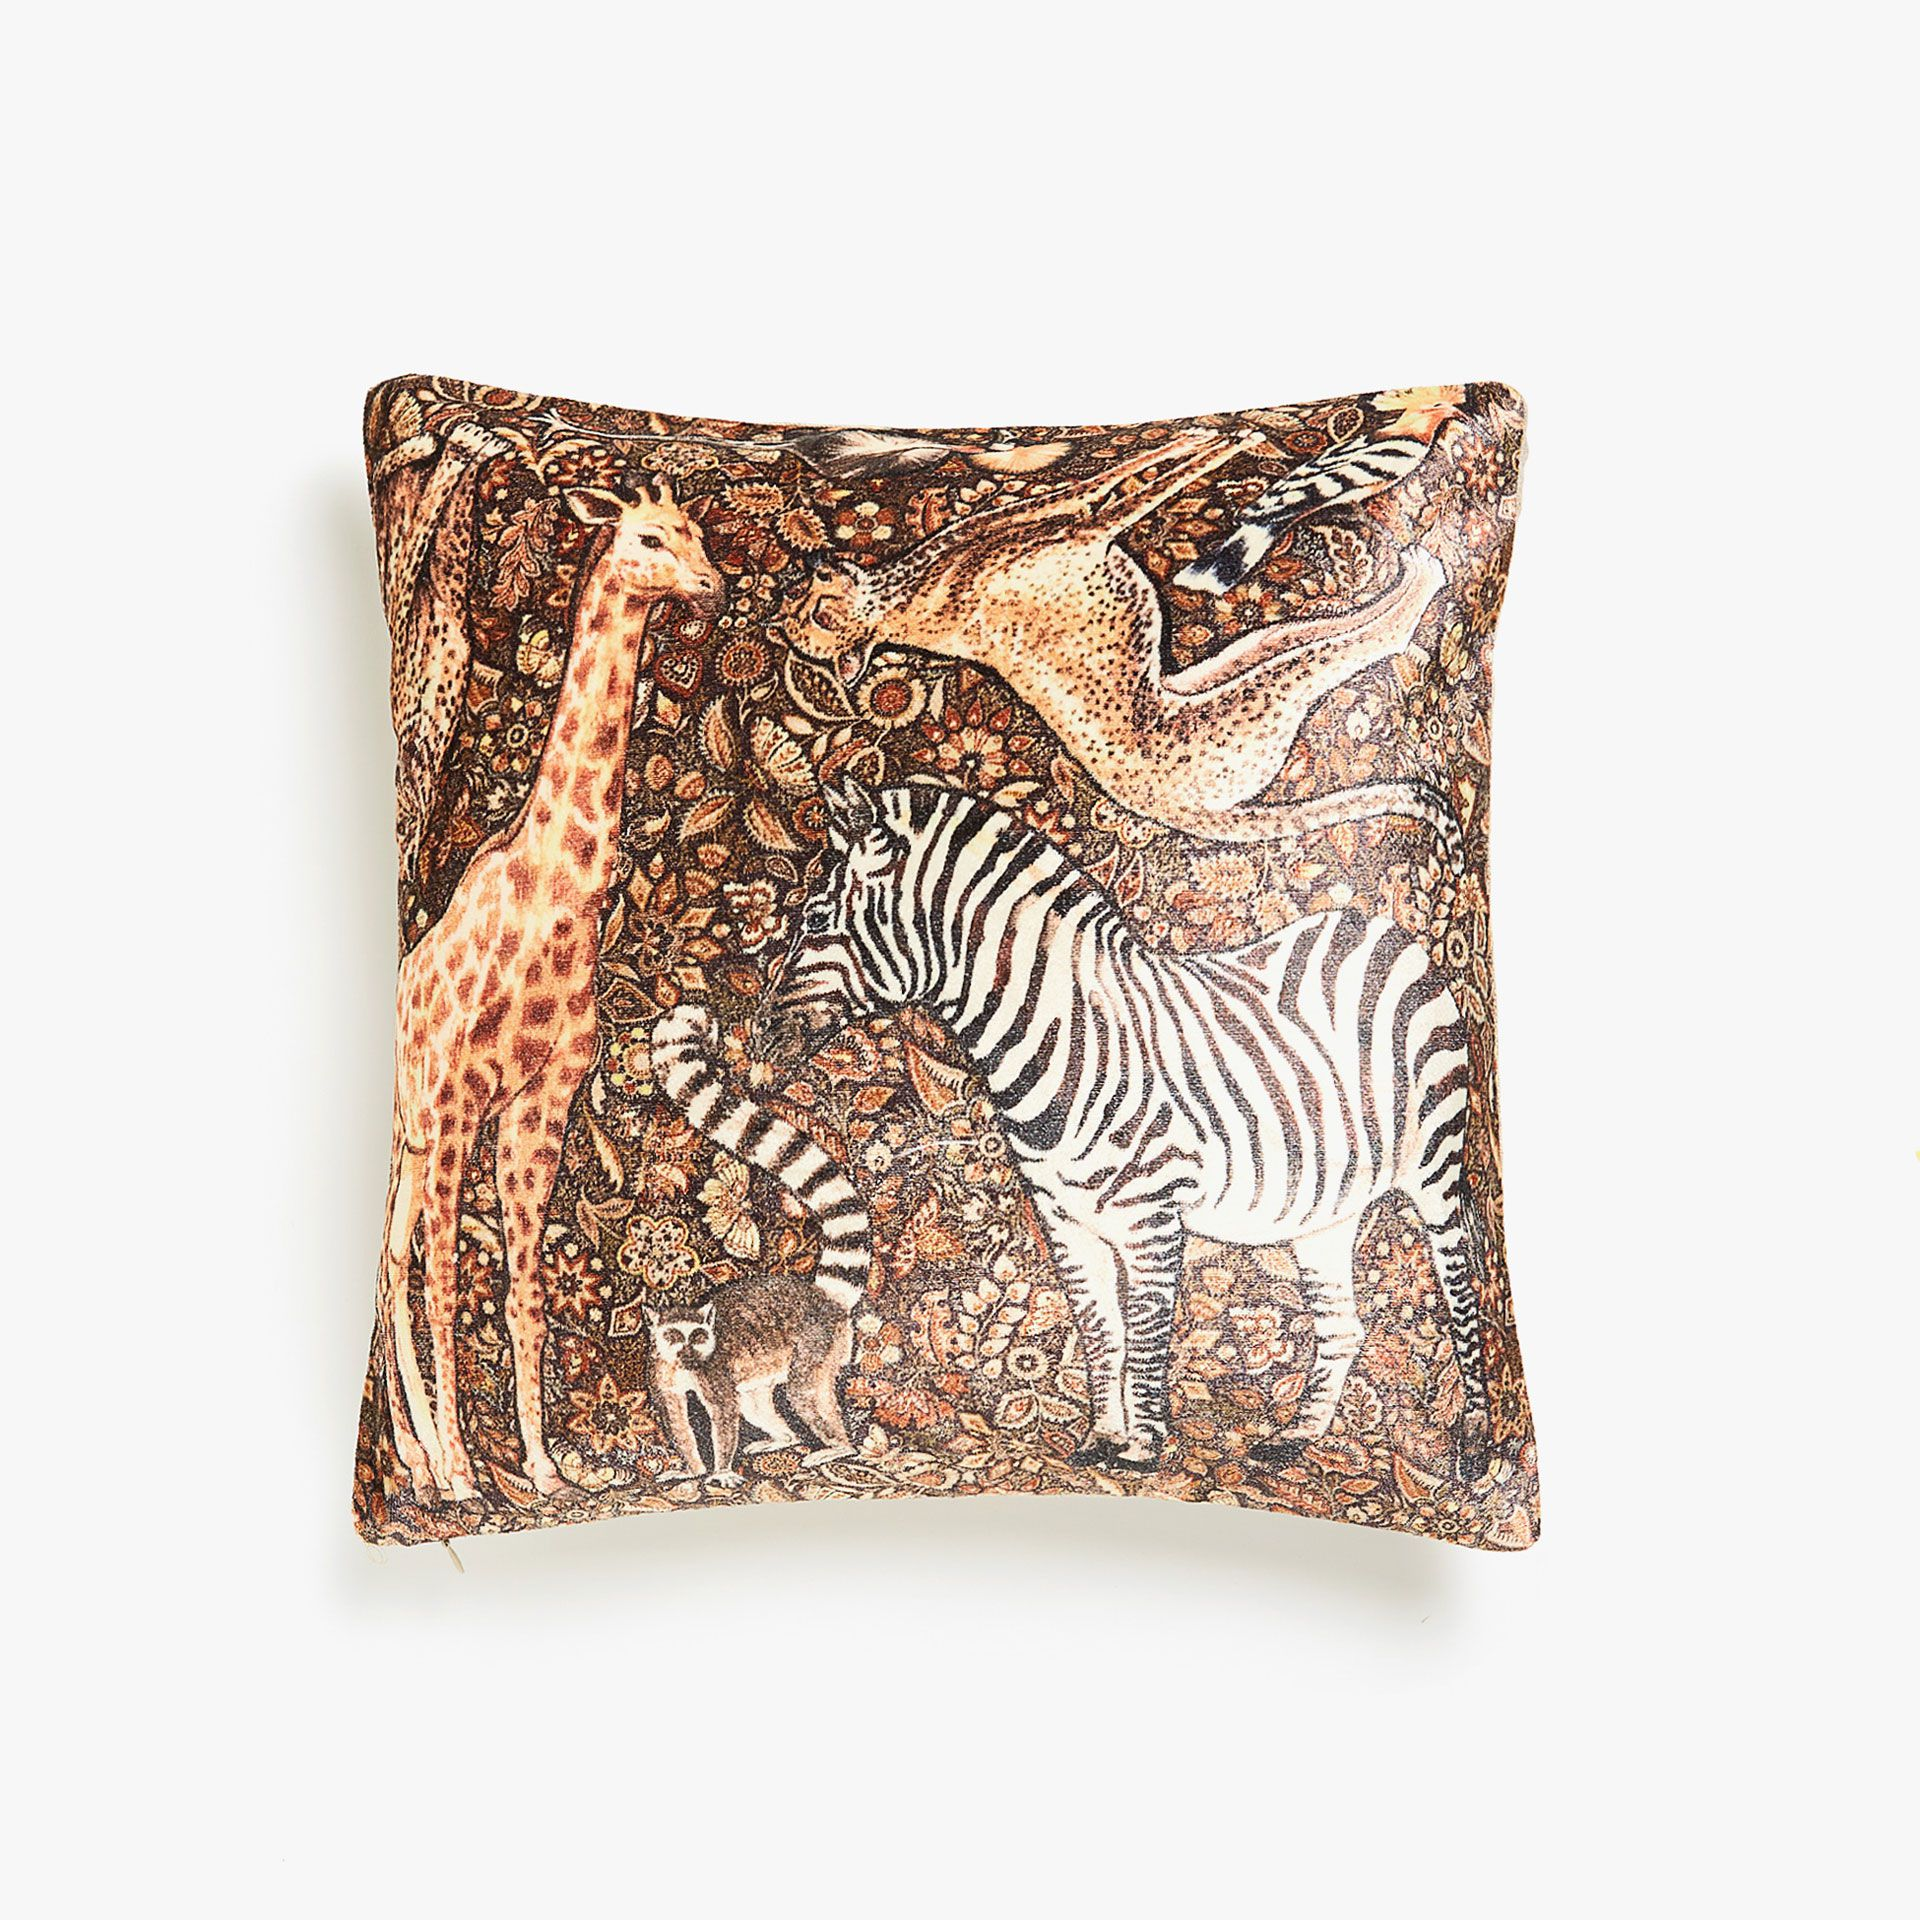 alexandra lili alessandra velvet beads gold b tones sq slate pillow print accents royal pillows of with jewel silver tone